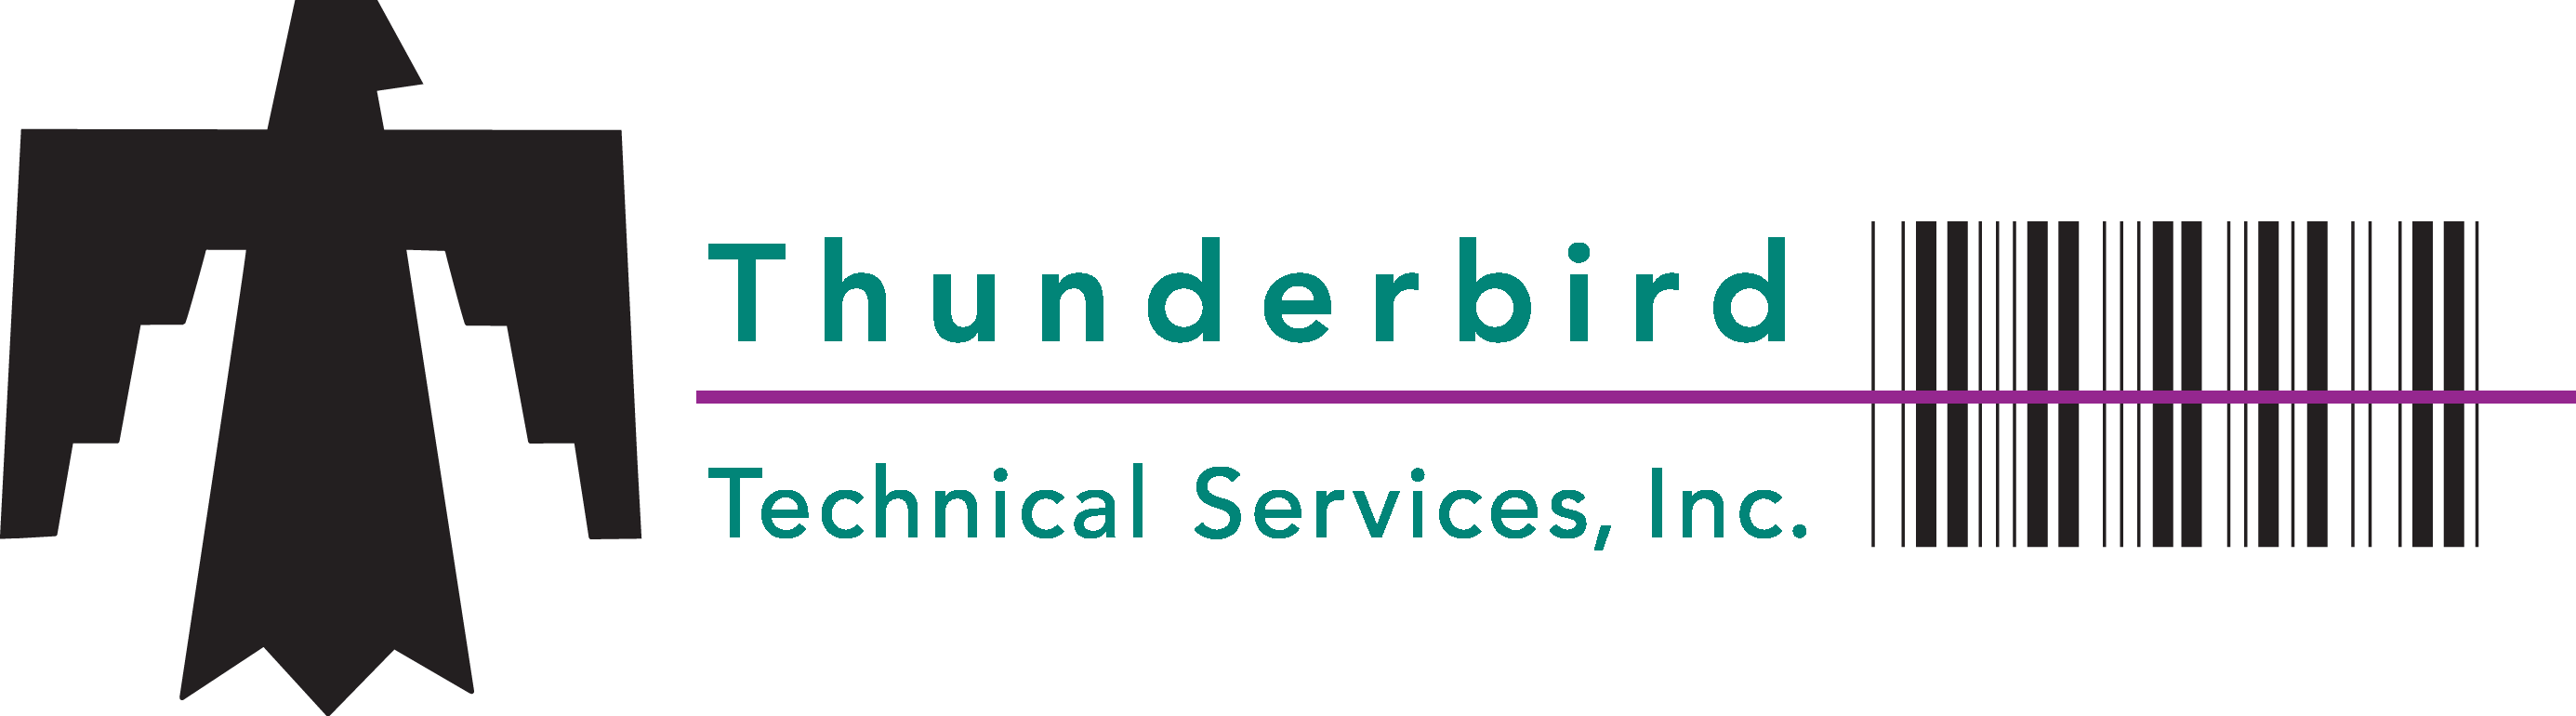 Thunderbird Technical Services, Inc.